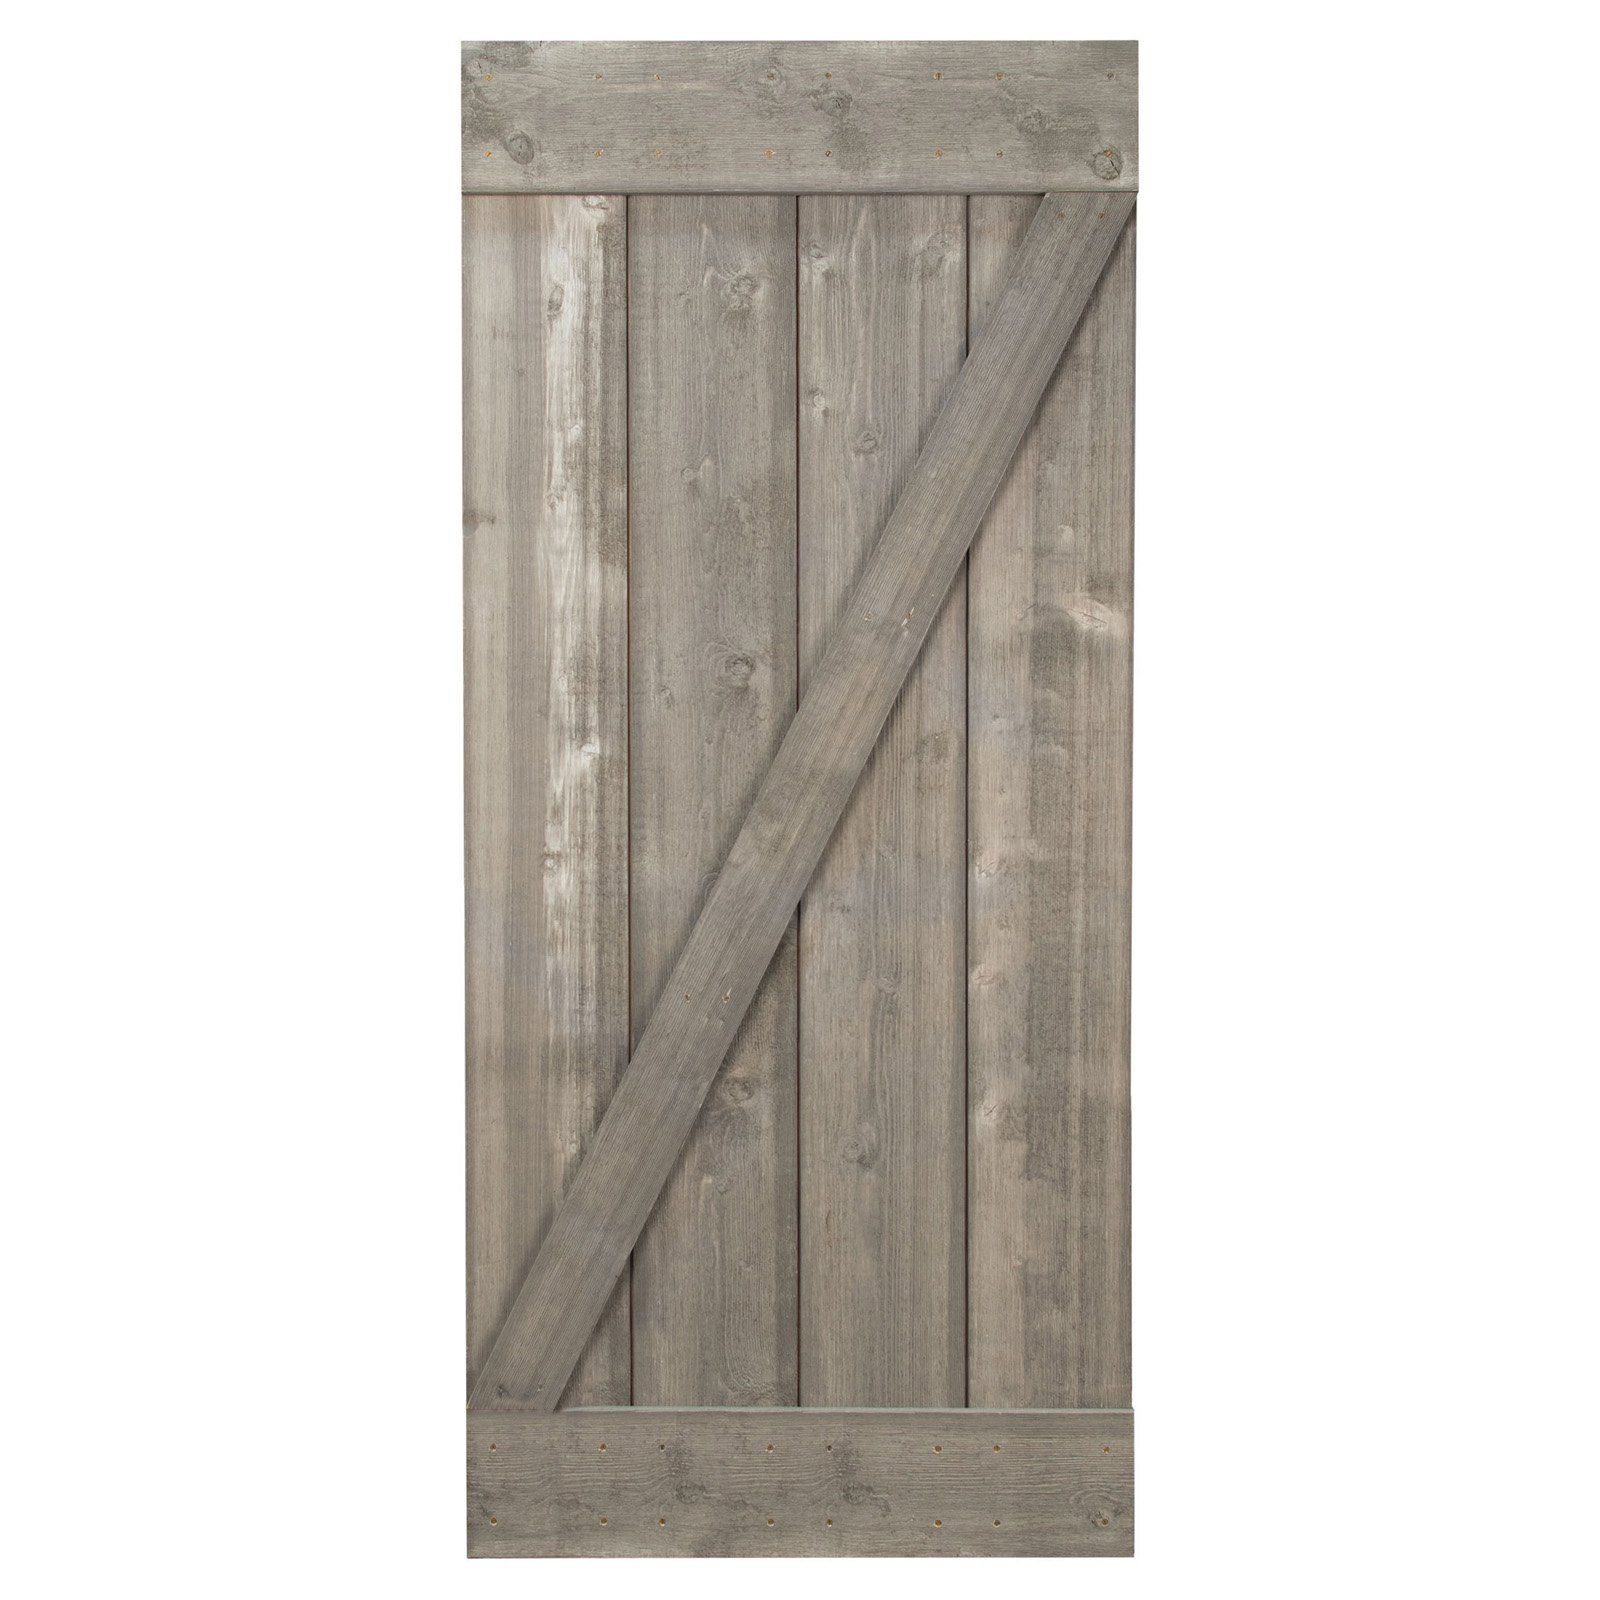 Real carriage weathered z brace barn door barn door shop now for rustic handcrafted weathered sliding barn doors in a variety of styles and finishes highest quality and fastest shipping vtopaller Image collections